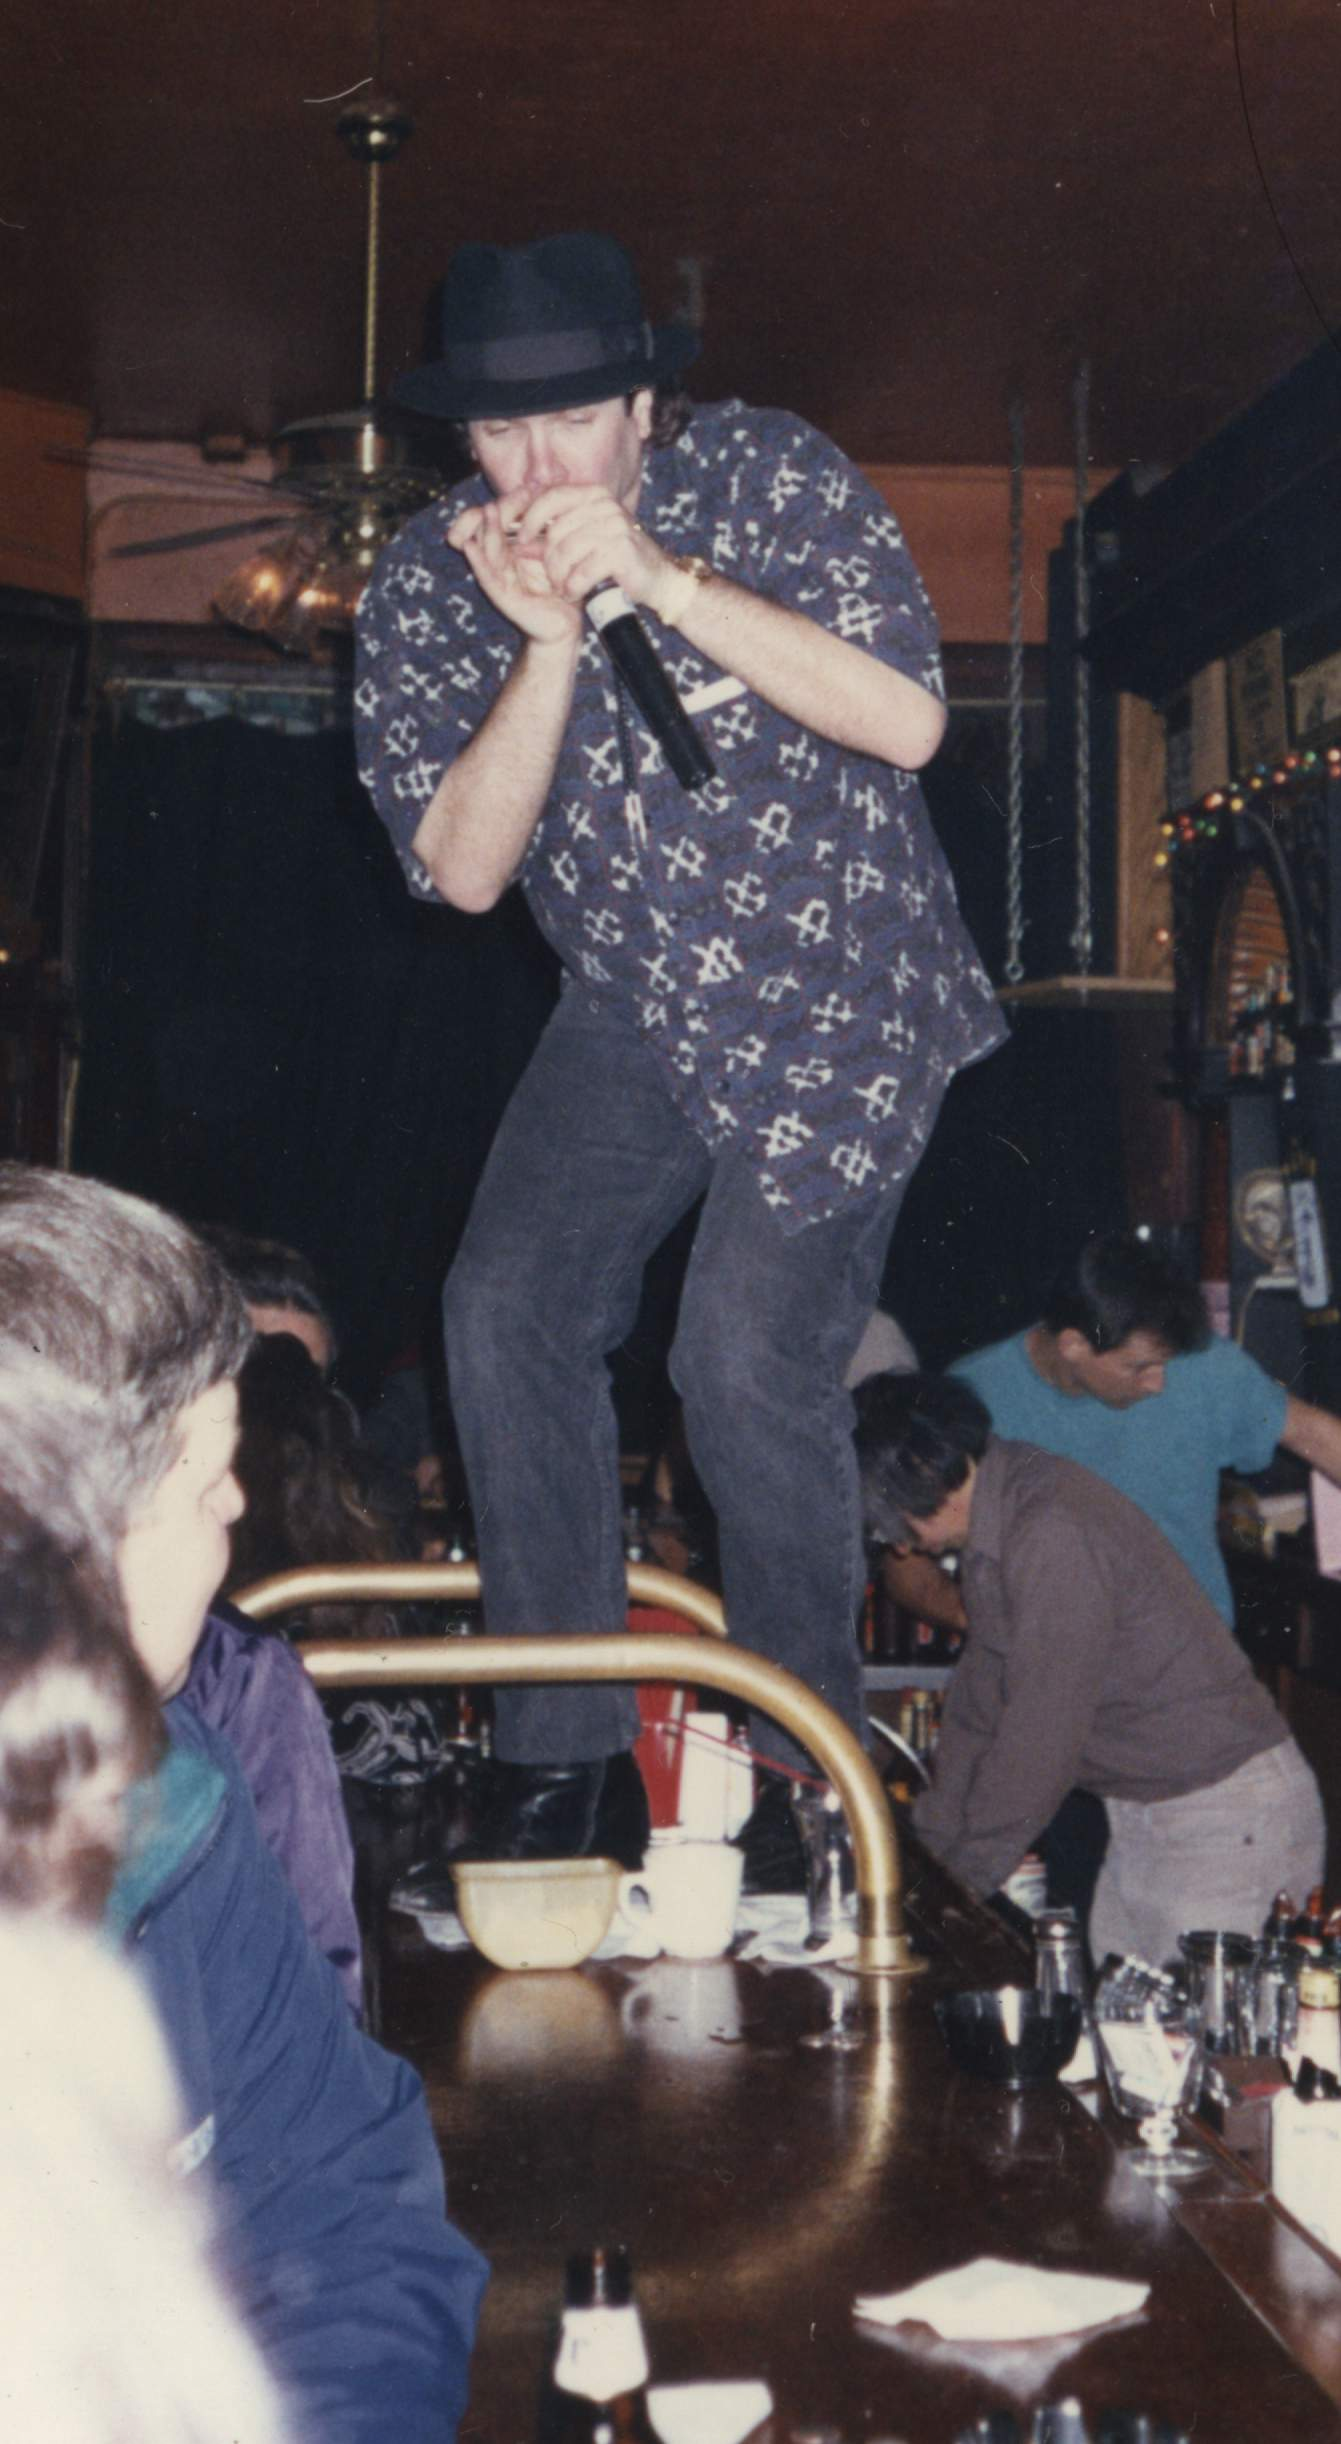 Eugene, Rockin' on the Bar at The Saloon in Northbeach, San Francisco, California with Myron Mu, Proprietor, tending bar